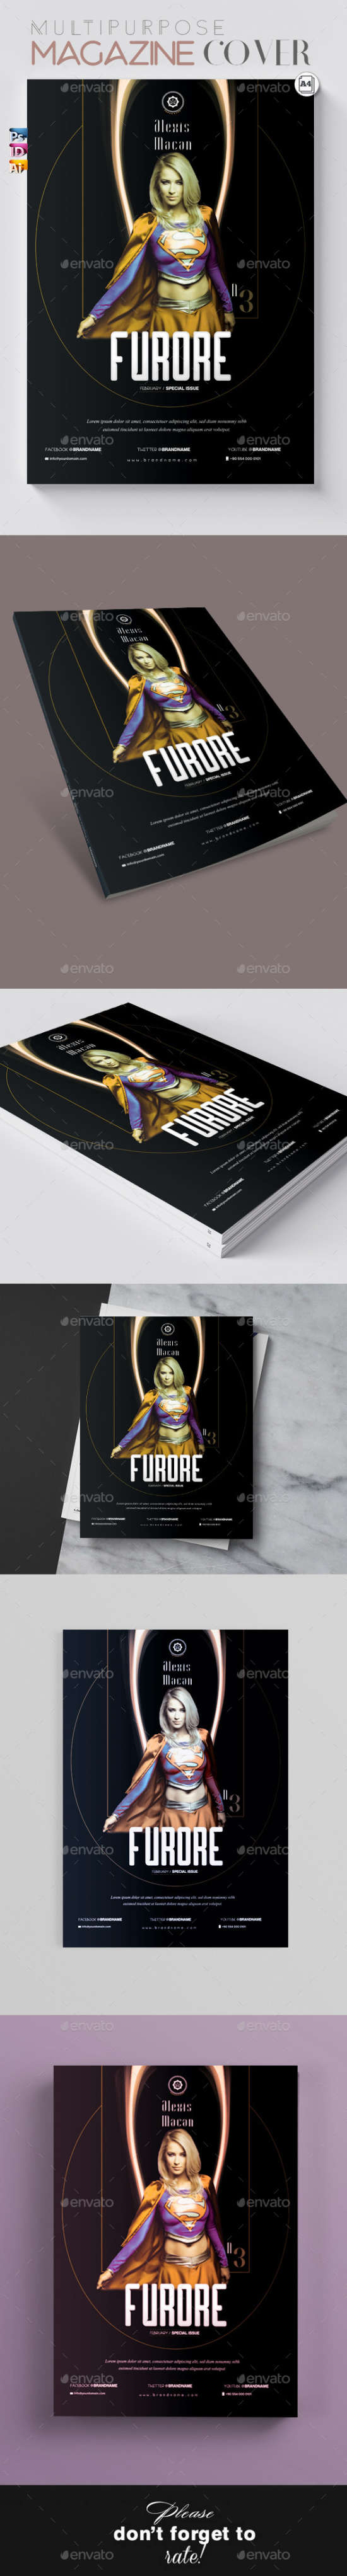 multipurpose magazine cover with all formats